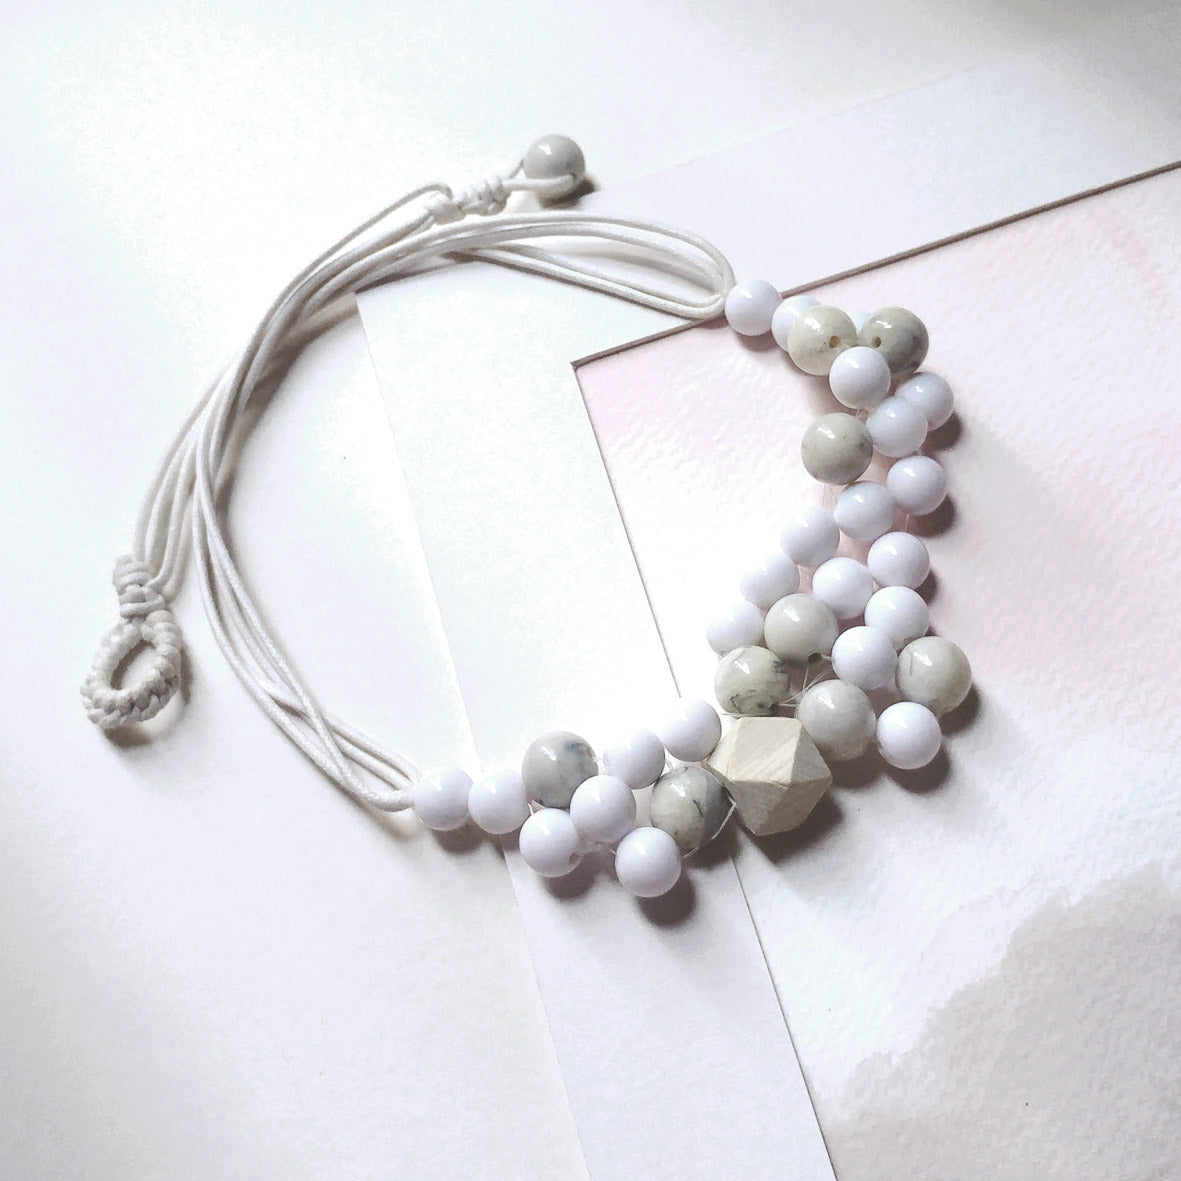 Bubble series set: Beaded Necklace and Earrings in White Marble Pattern